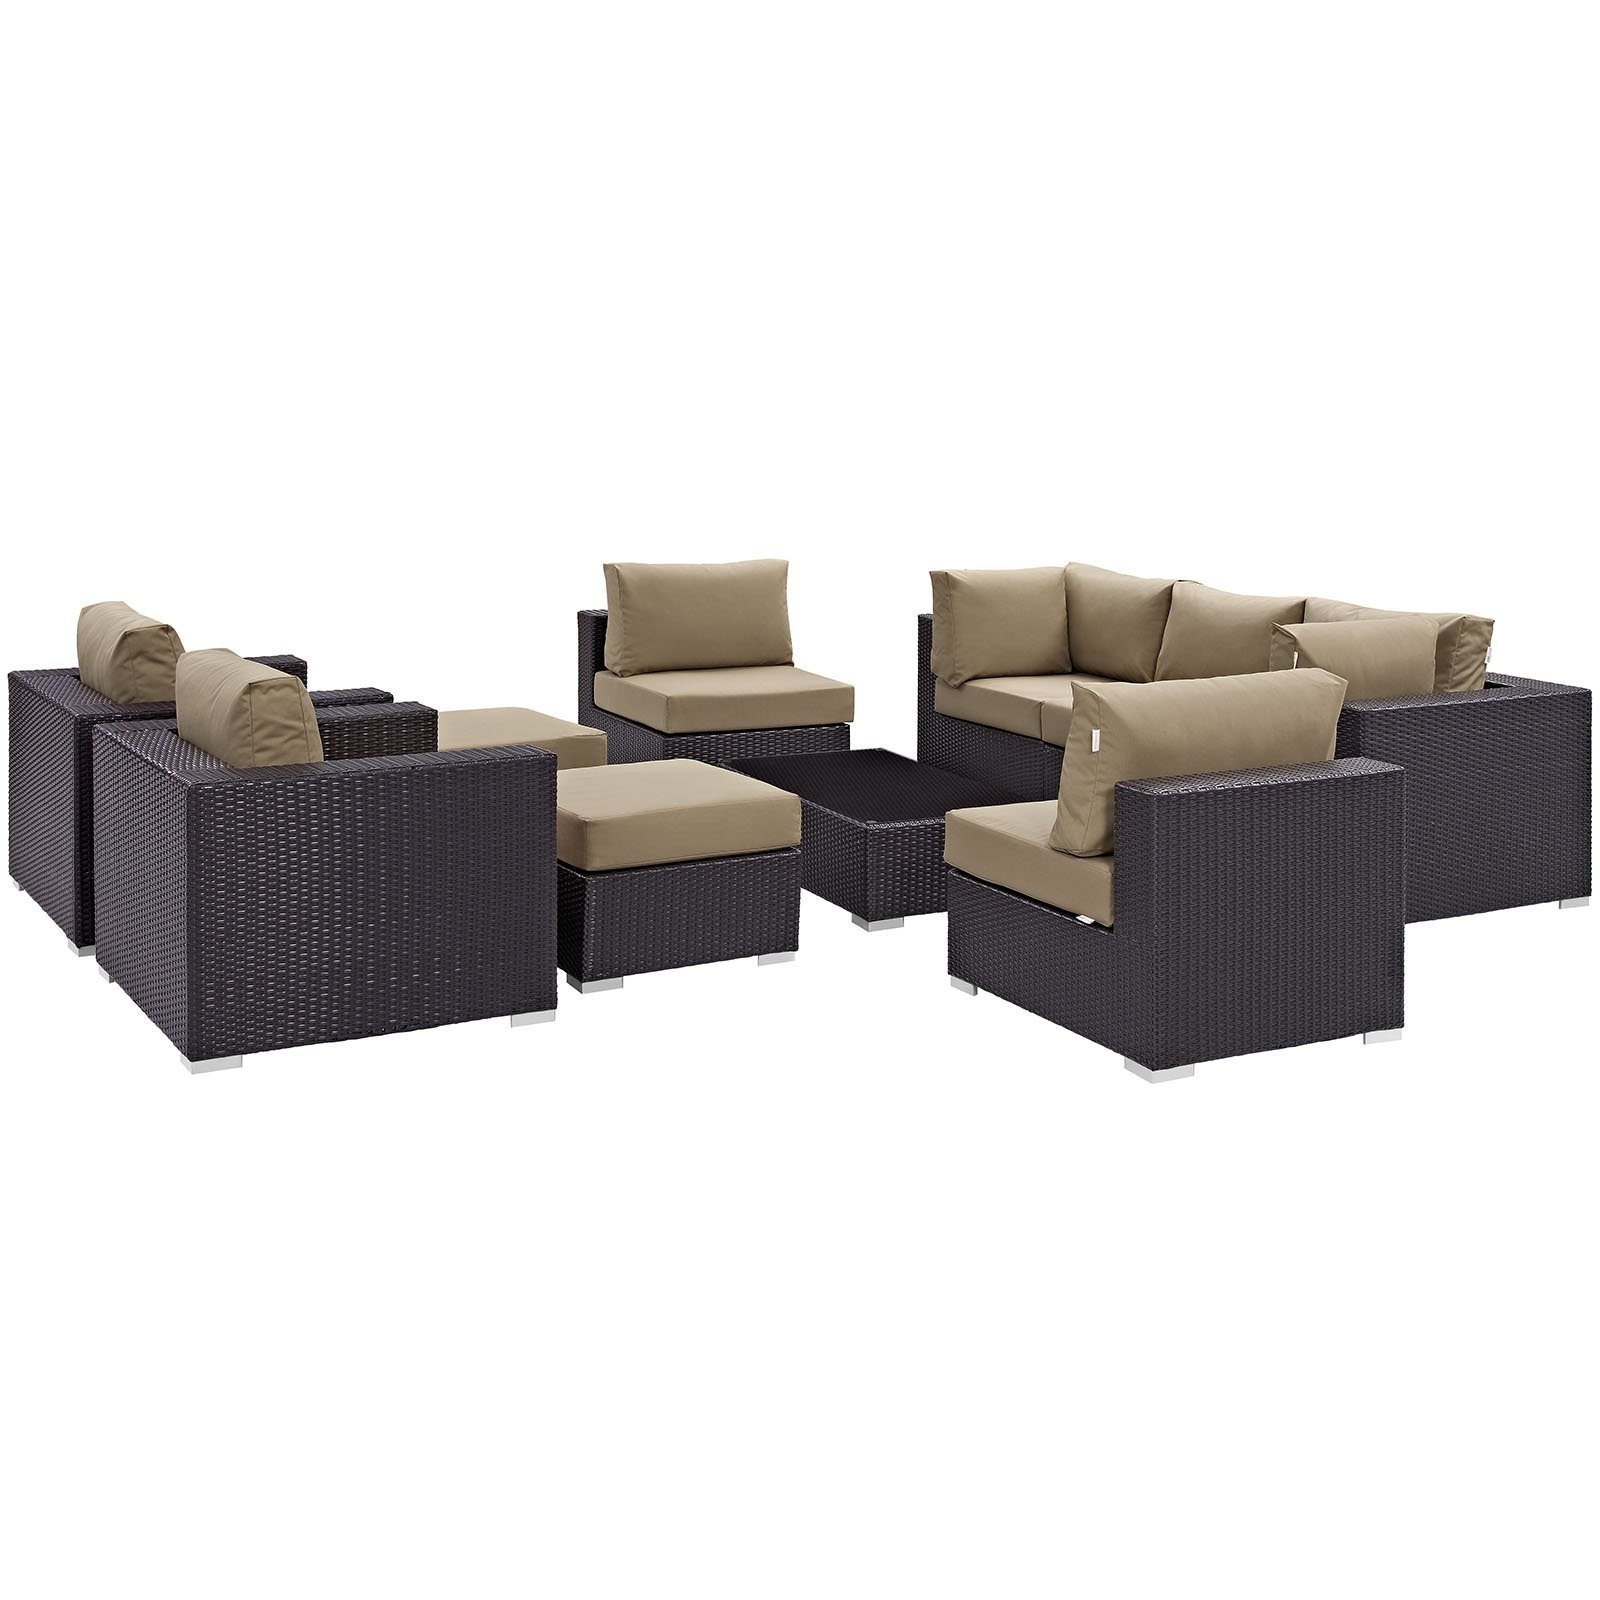 Convene 10 Piece Outdoor Patio Sectional Set Espresso Mocha EEI-2169-EXP-MOC-SE